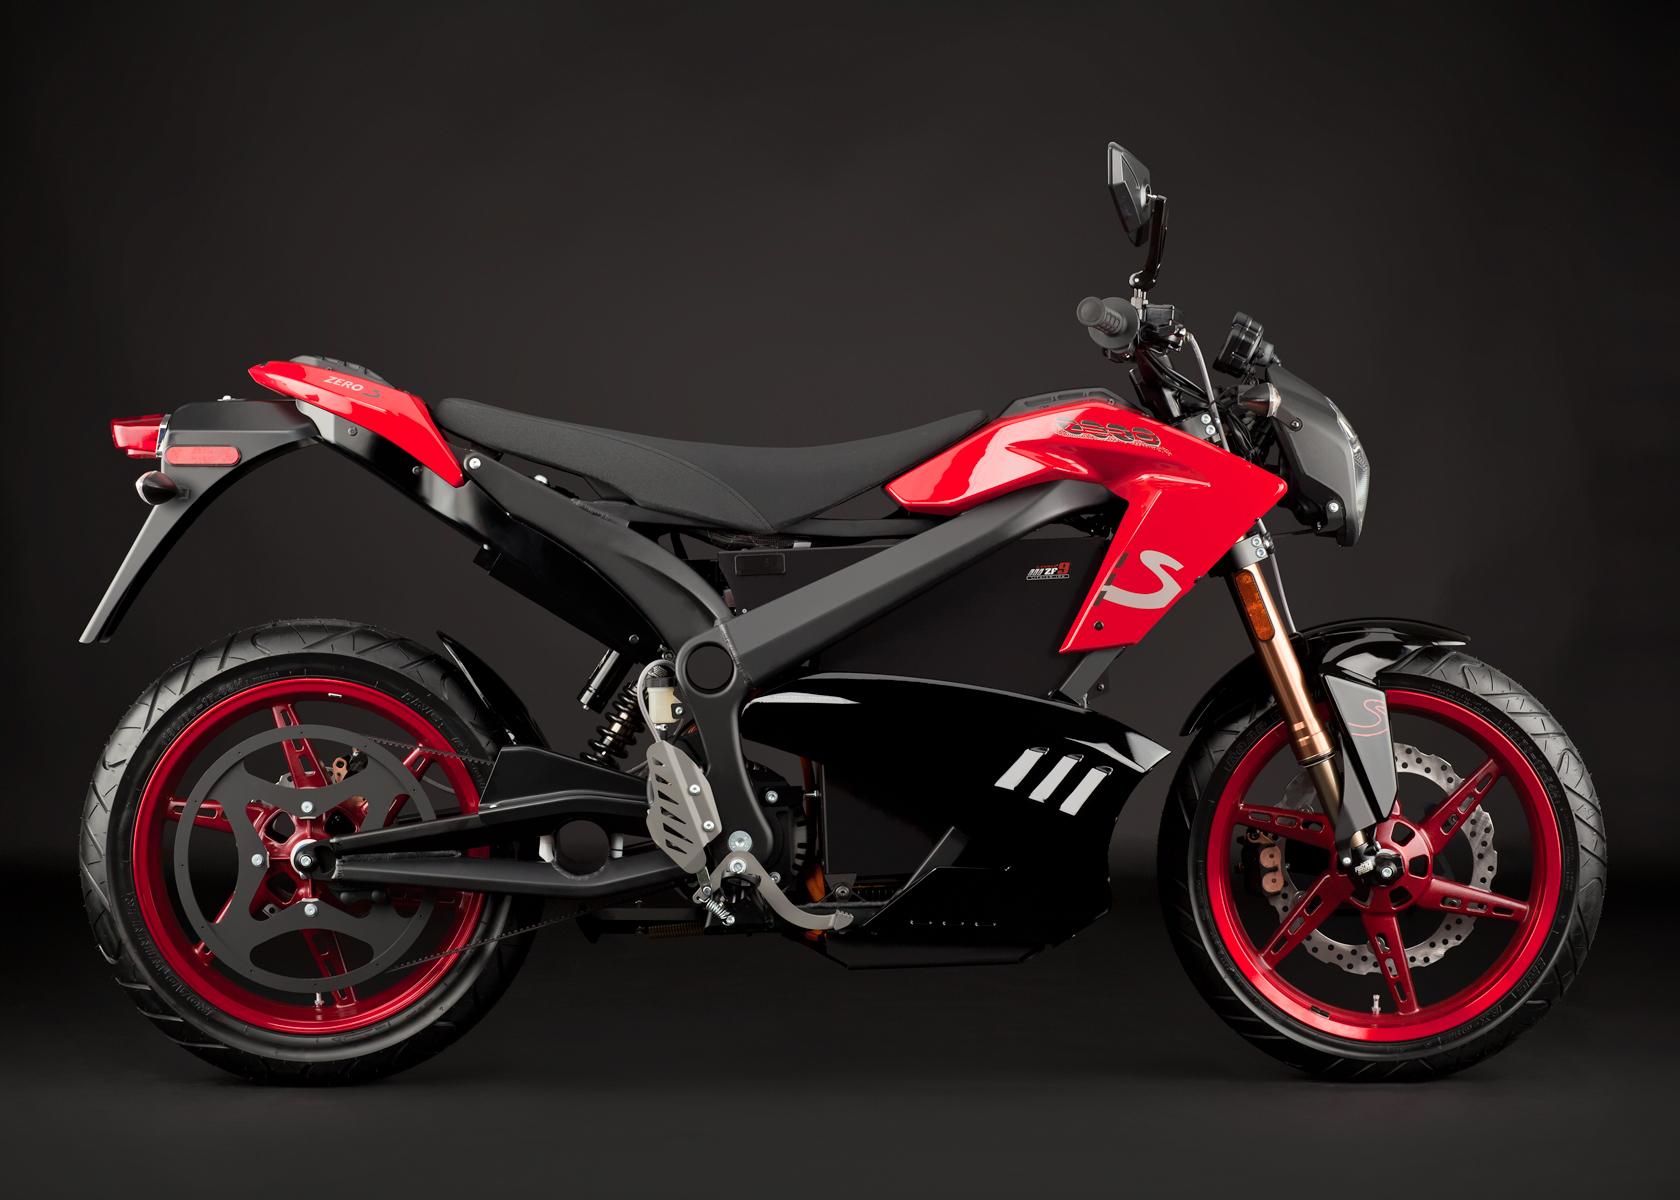 '.2012 Zero S Electric Motorcycle: Red Angle Right with Sidebags, Rear View.'